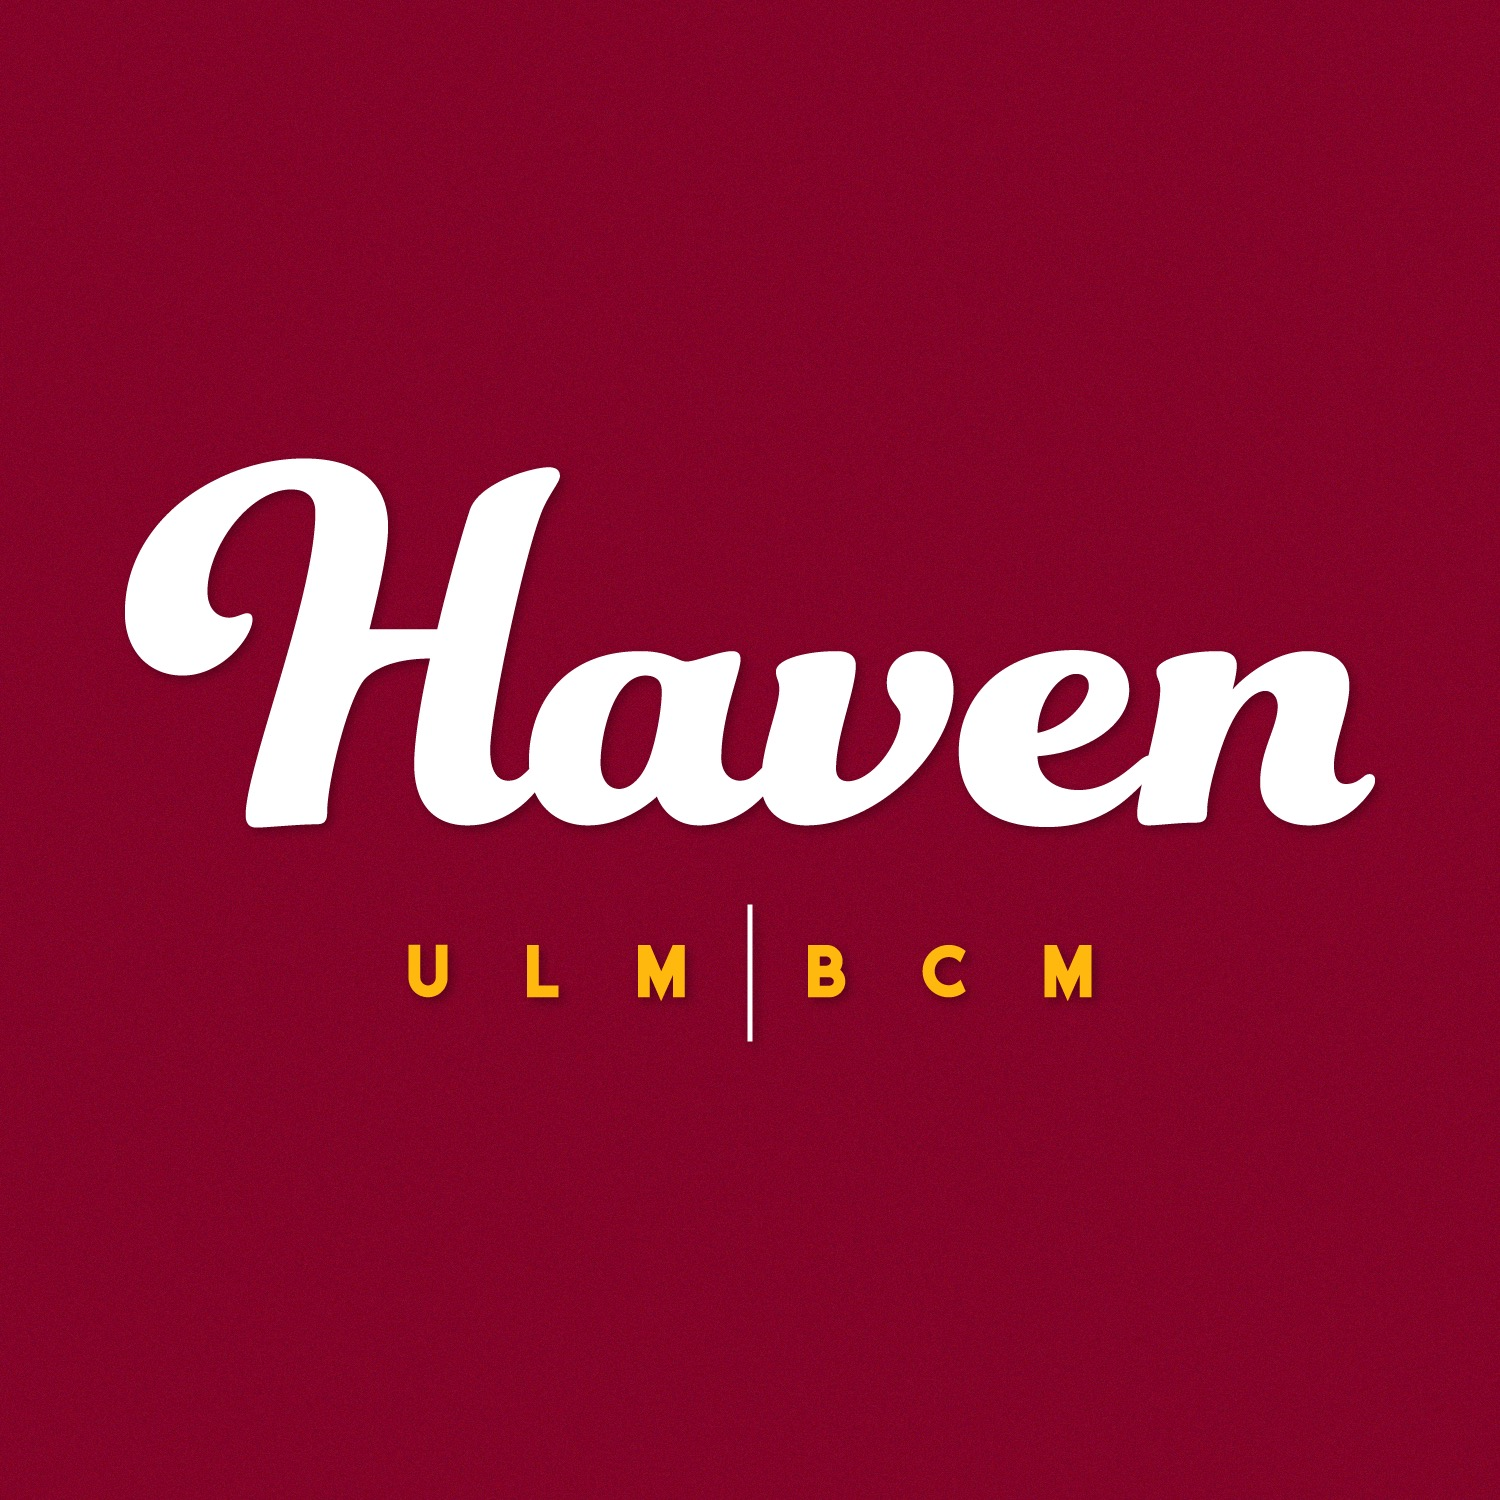 BCM Haven - Haven is the weekly Worship Gathering of the BCM and will kick off this year at 8pm on Monday August 19 at BCM building. Come for a time of worship from BCM student praise band, a message from BCM Director Chad, and a chance to meet local churches to see how you can be involved!